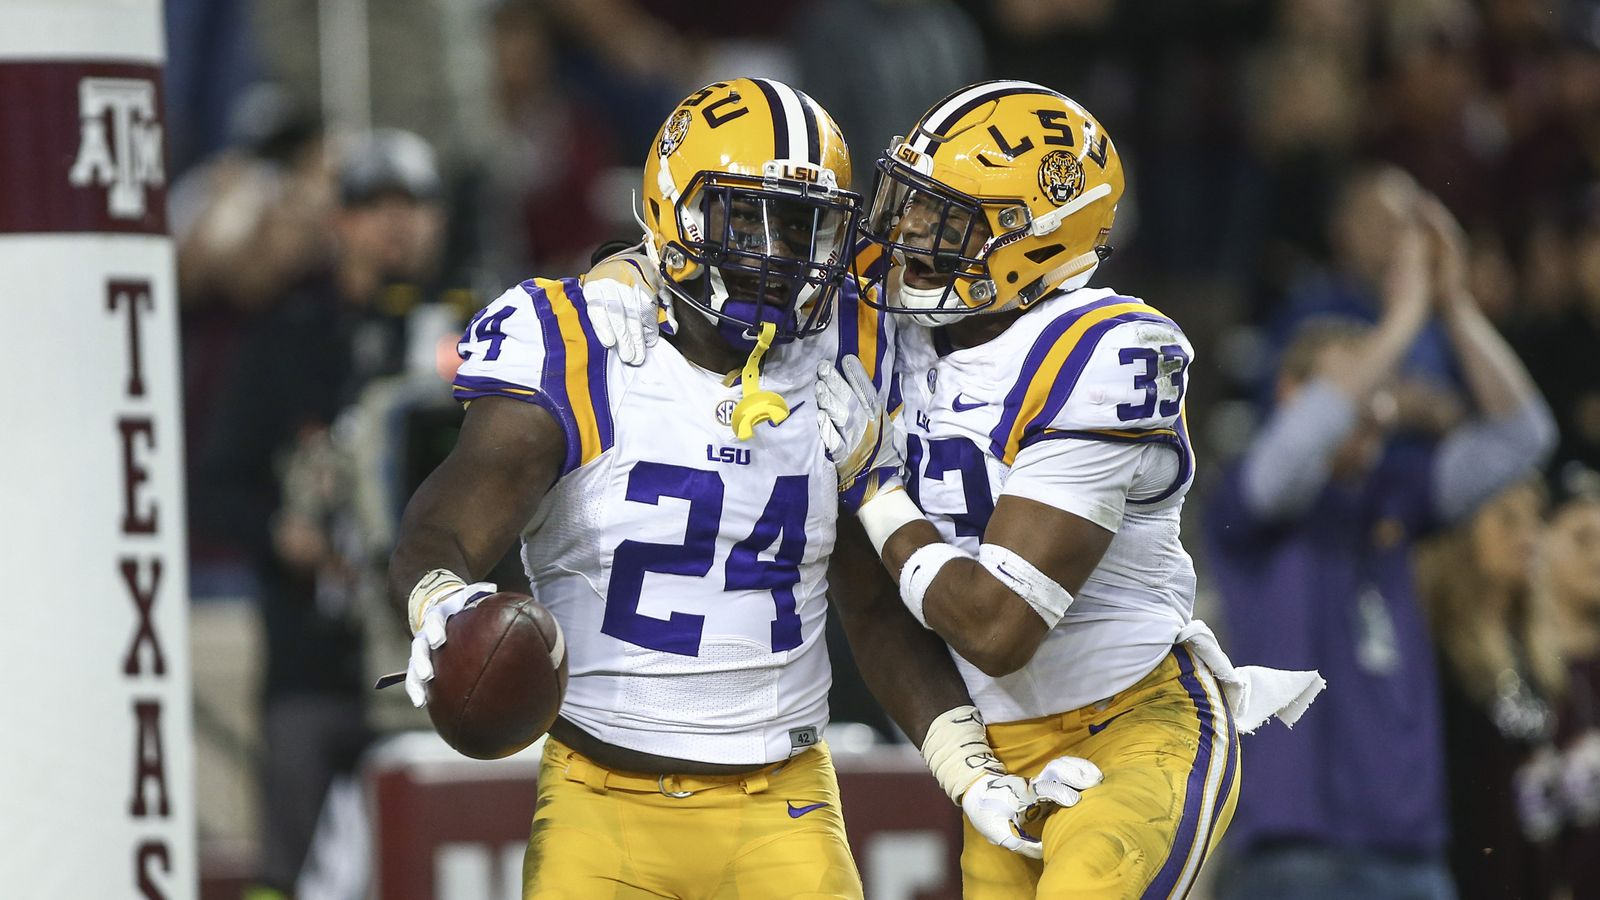 Devin White will be key player on defense in 2017